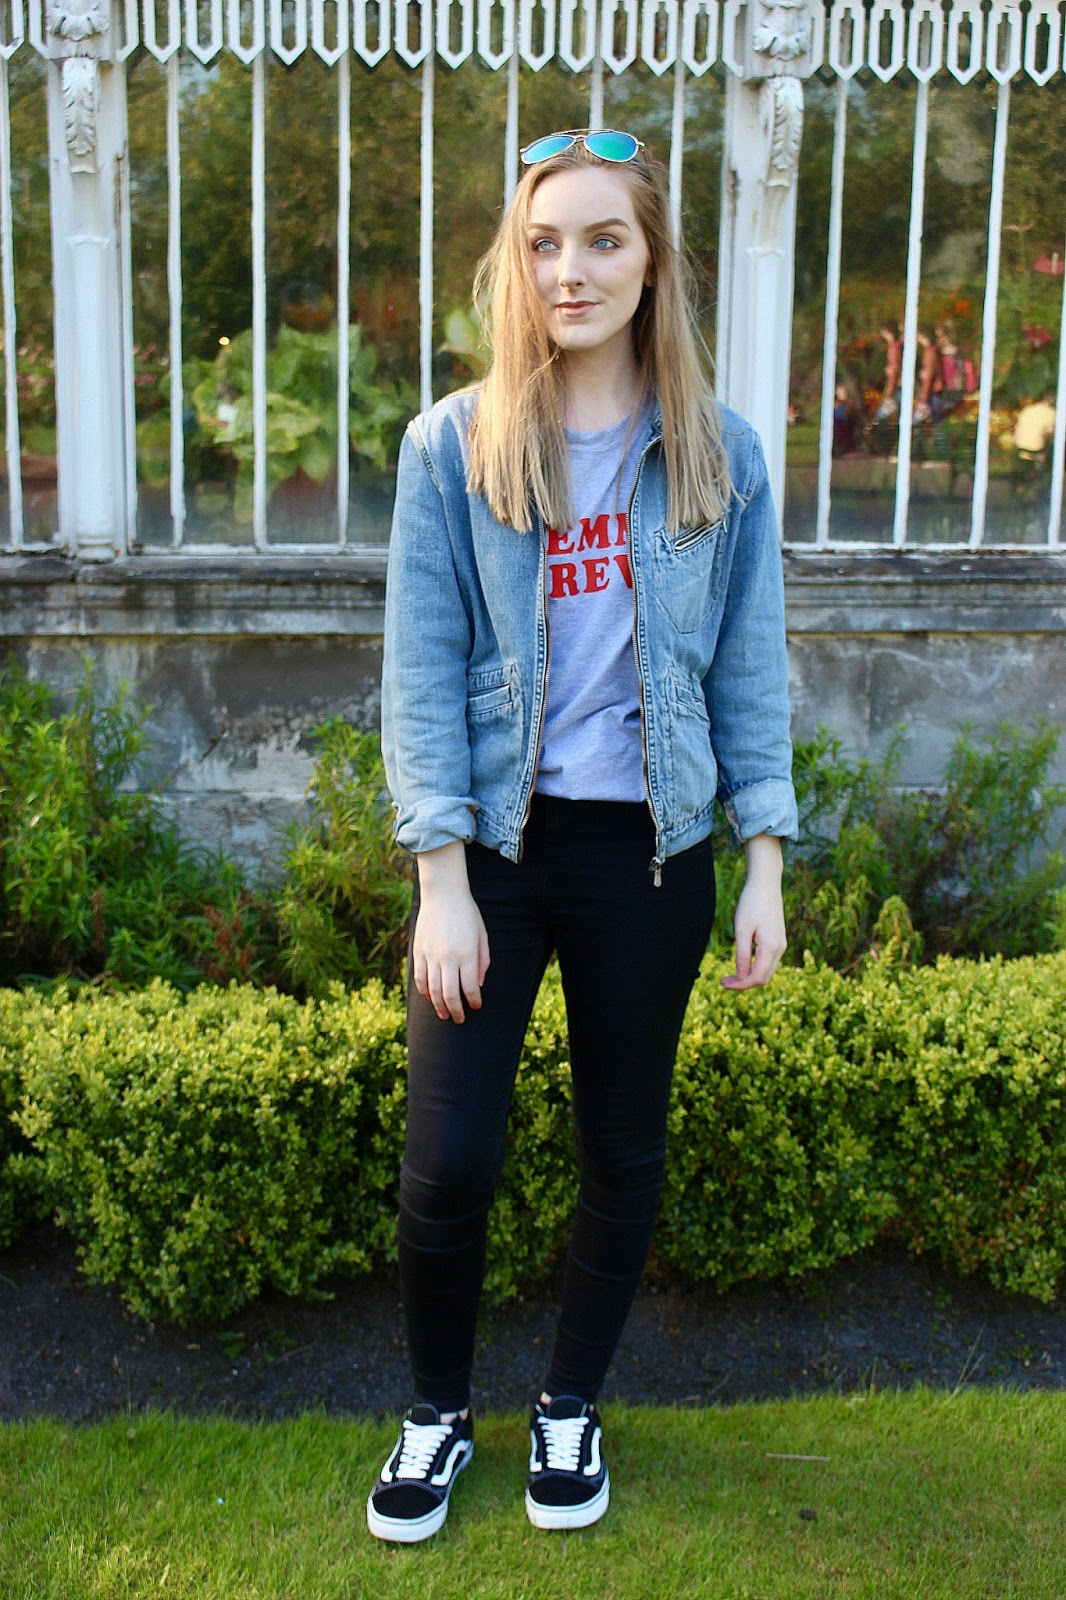 Why I stopped caring what other people think, how to stop caring about what other people think, how to stop caring what others think, denim jacket outfit, summer style, femme forever t shirt topshop, why I stopped giving a fuck about what other people think, outfit ideas, vans old skool outfit, vans old skool, denim jacket outfit